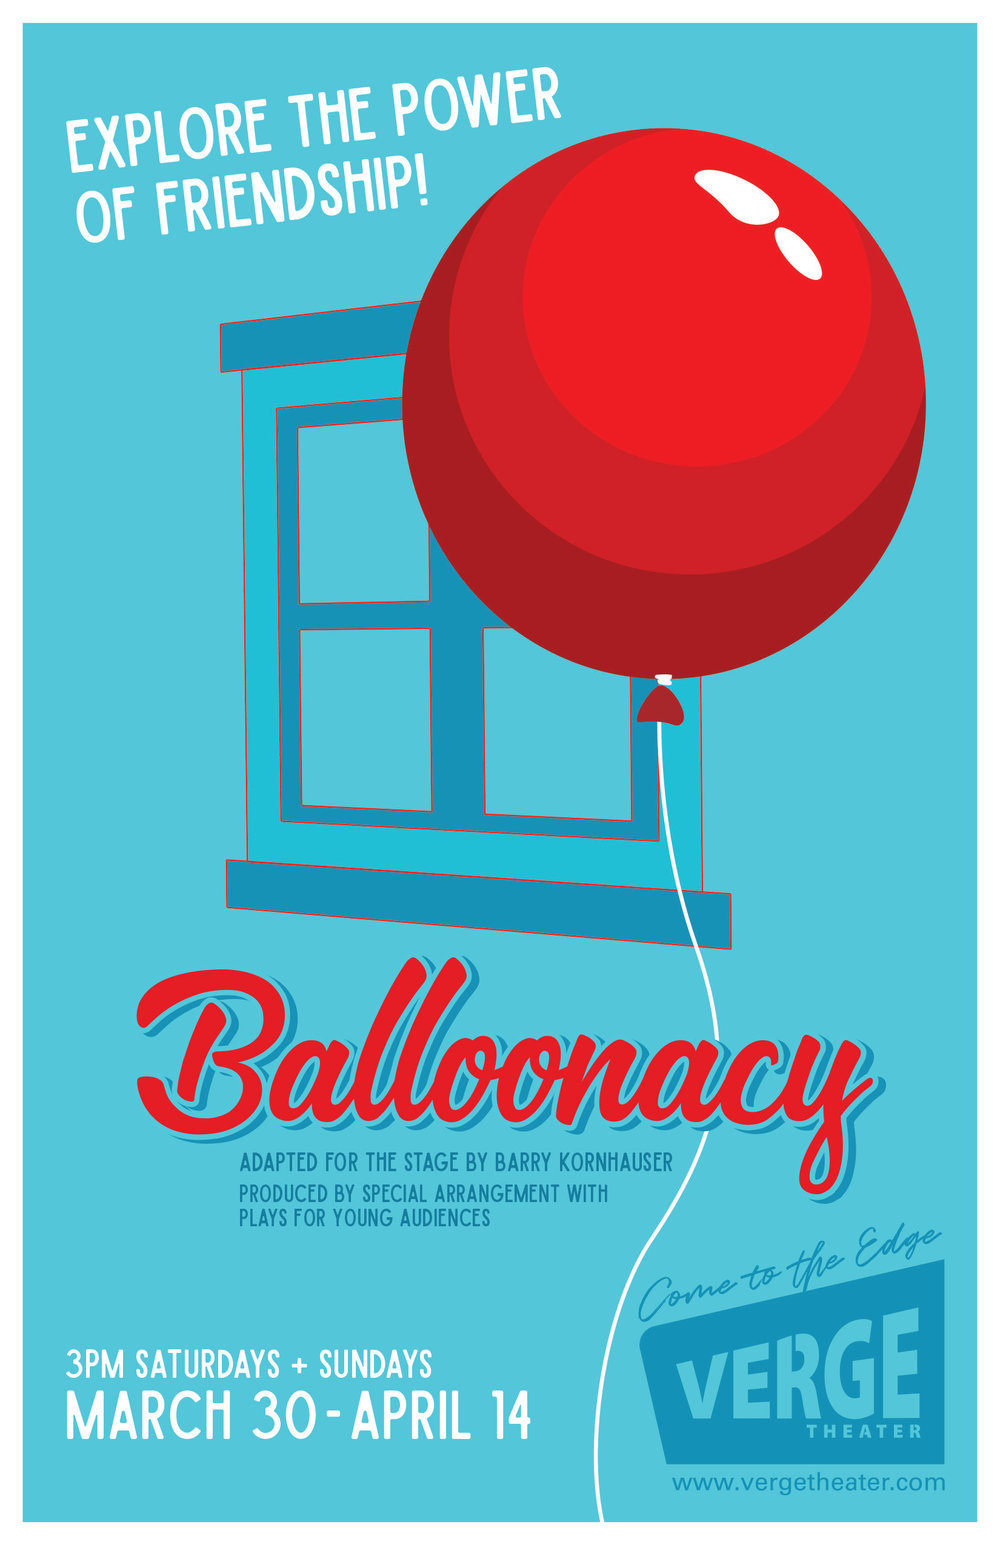 Balloonacy 11 x 17 for lobby.png